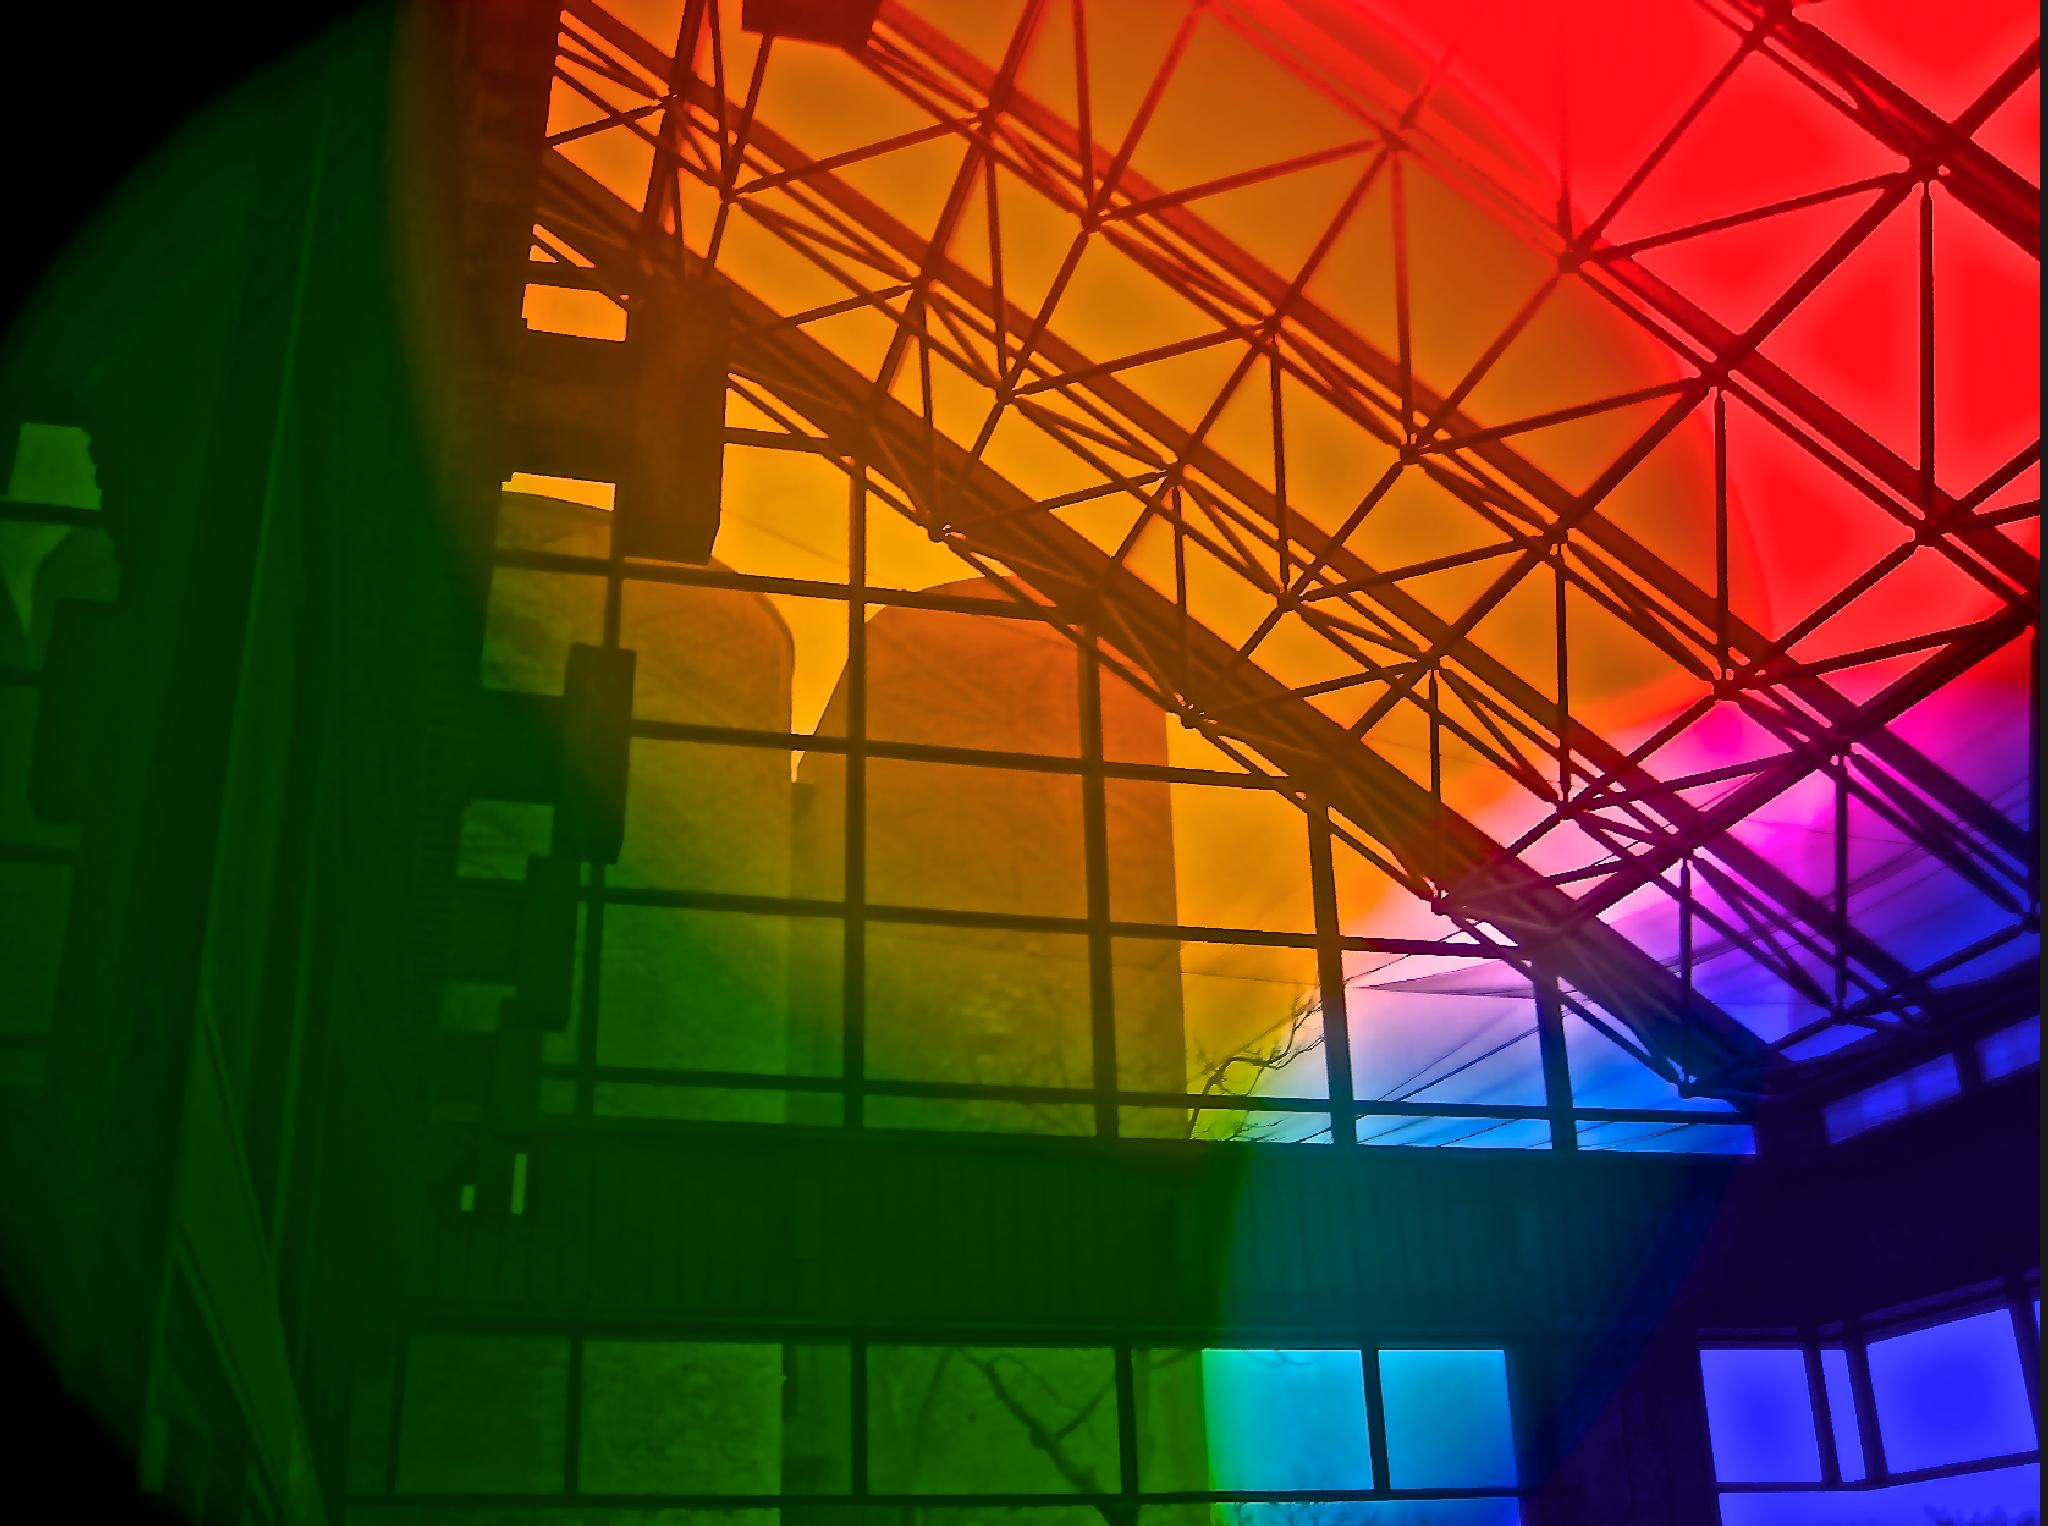 Rainbow Architecture by John Tabacco